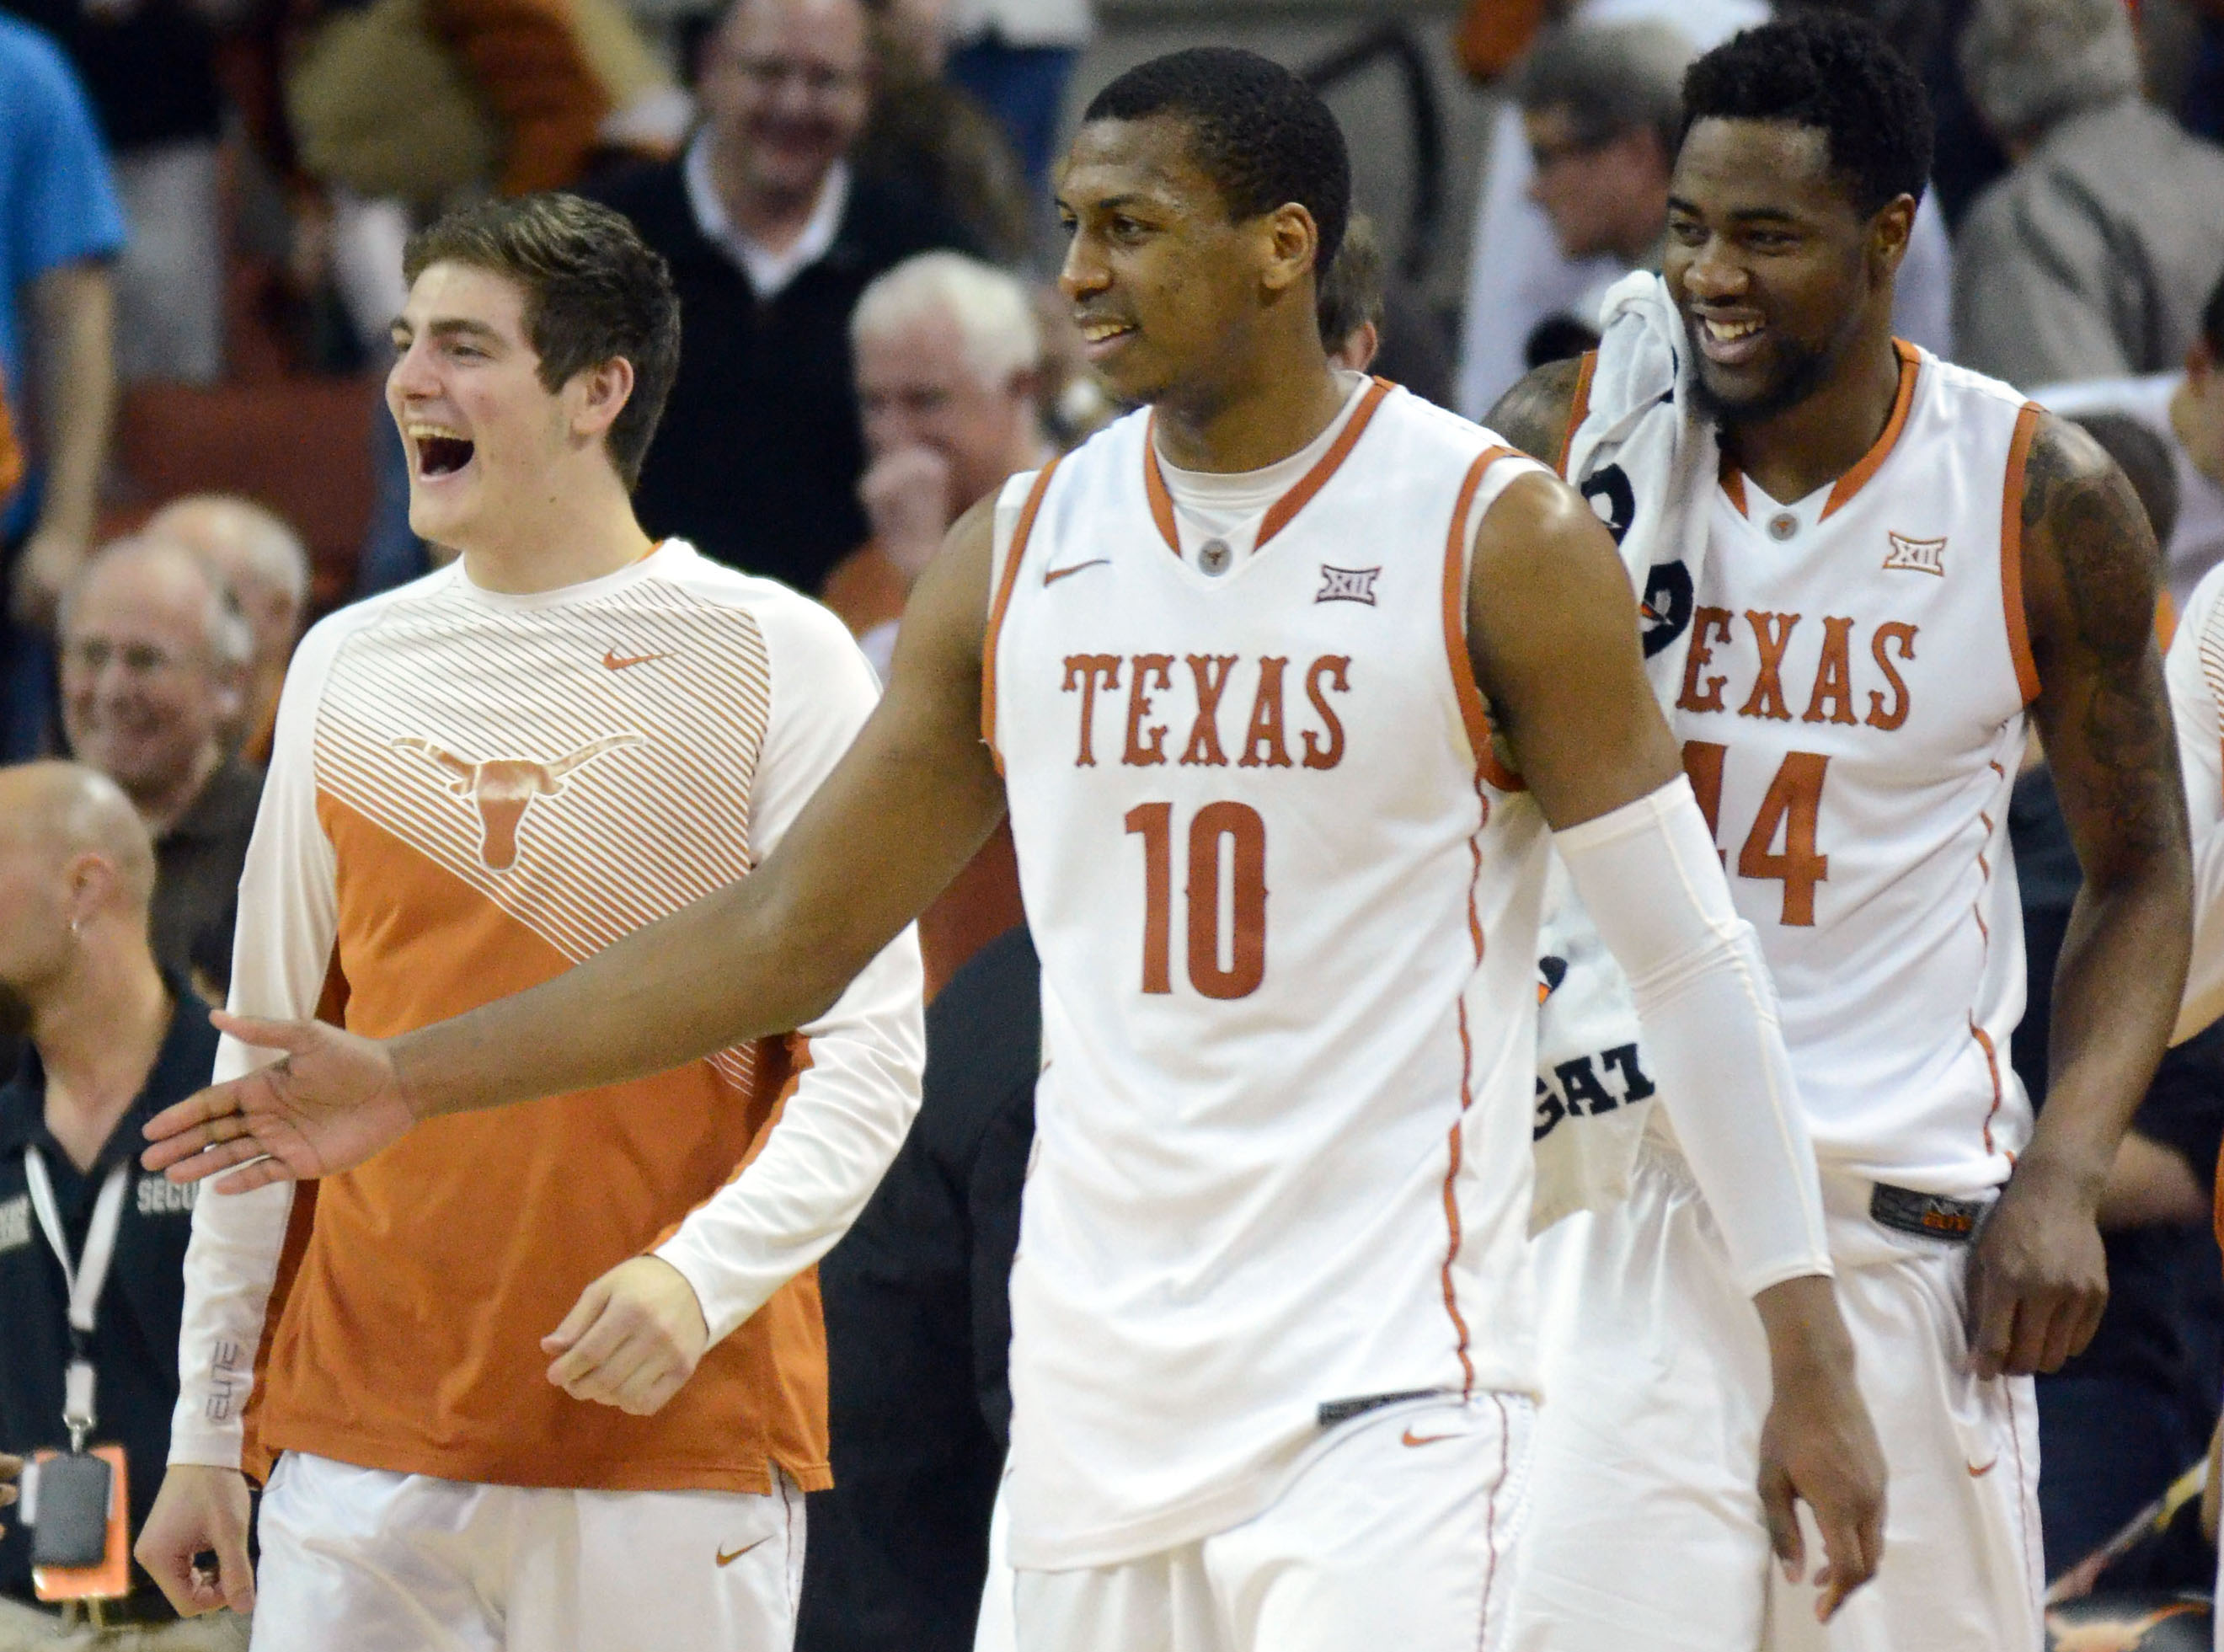 Texas' Jonathan Holmes (center) celebrates a midseason win vs. Kansas State with teammates Ryan McClurg (left) and Prince Ibeh (right). Brendan Maloney / USA TODAY Sports